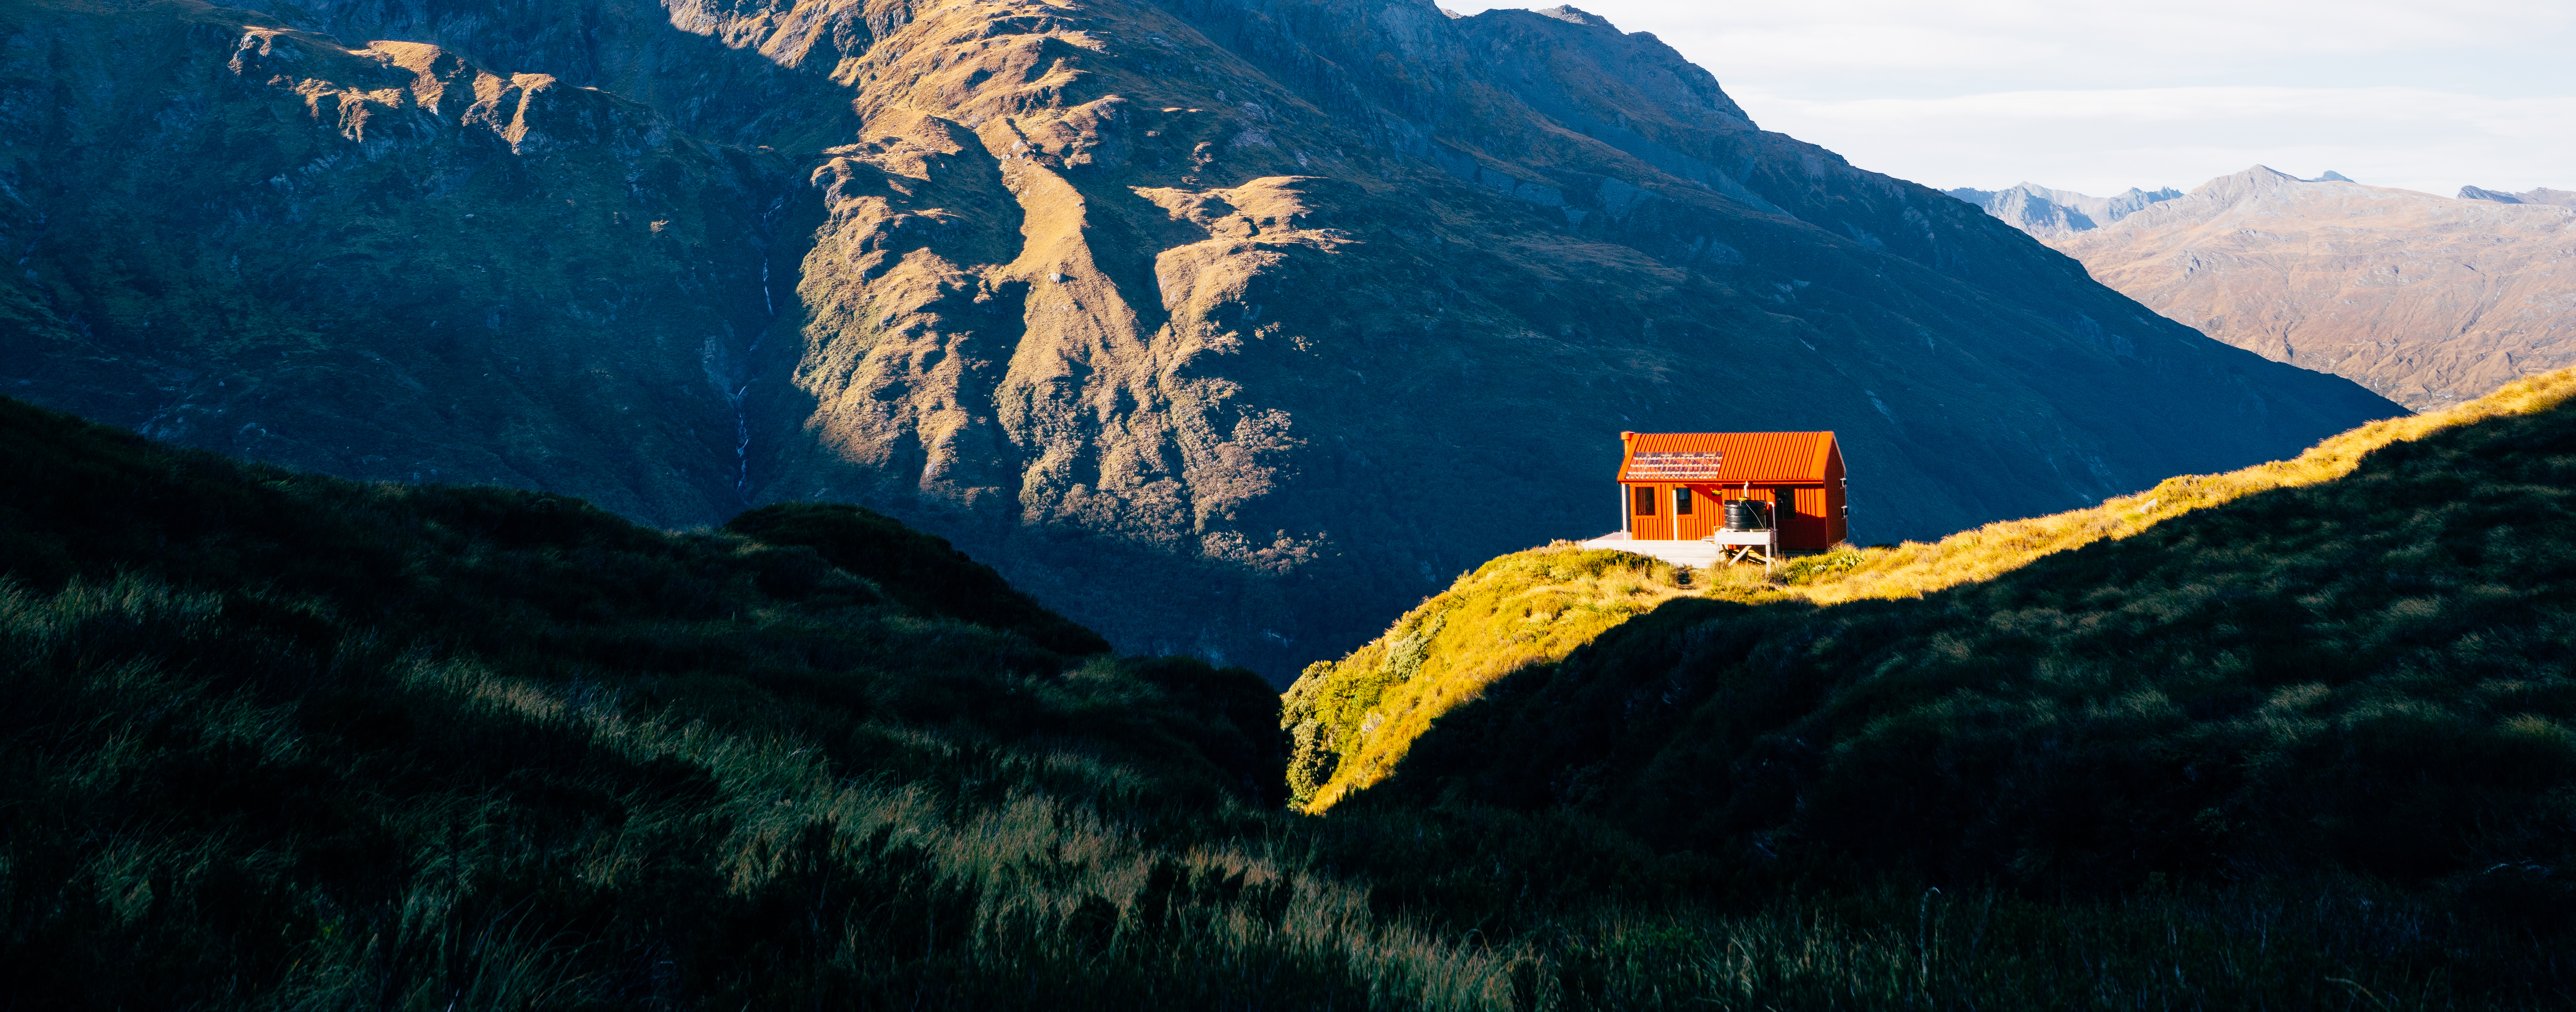 Liverpool-Hut-Sunrise-MANP-Wanaka-JL